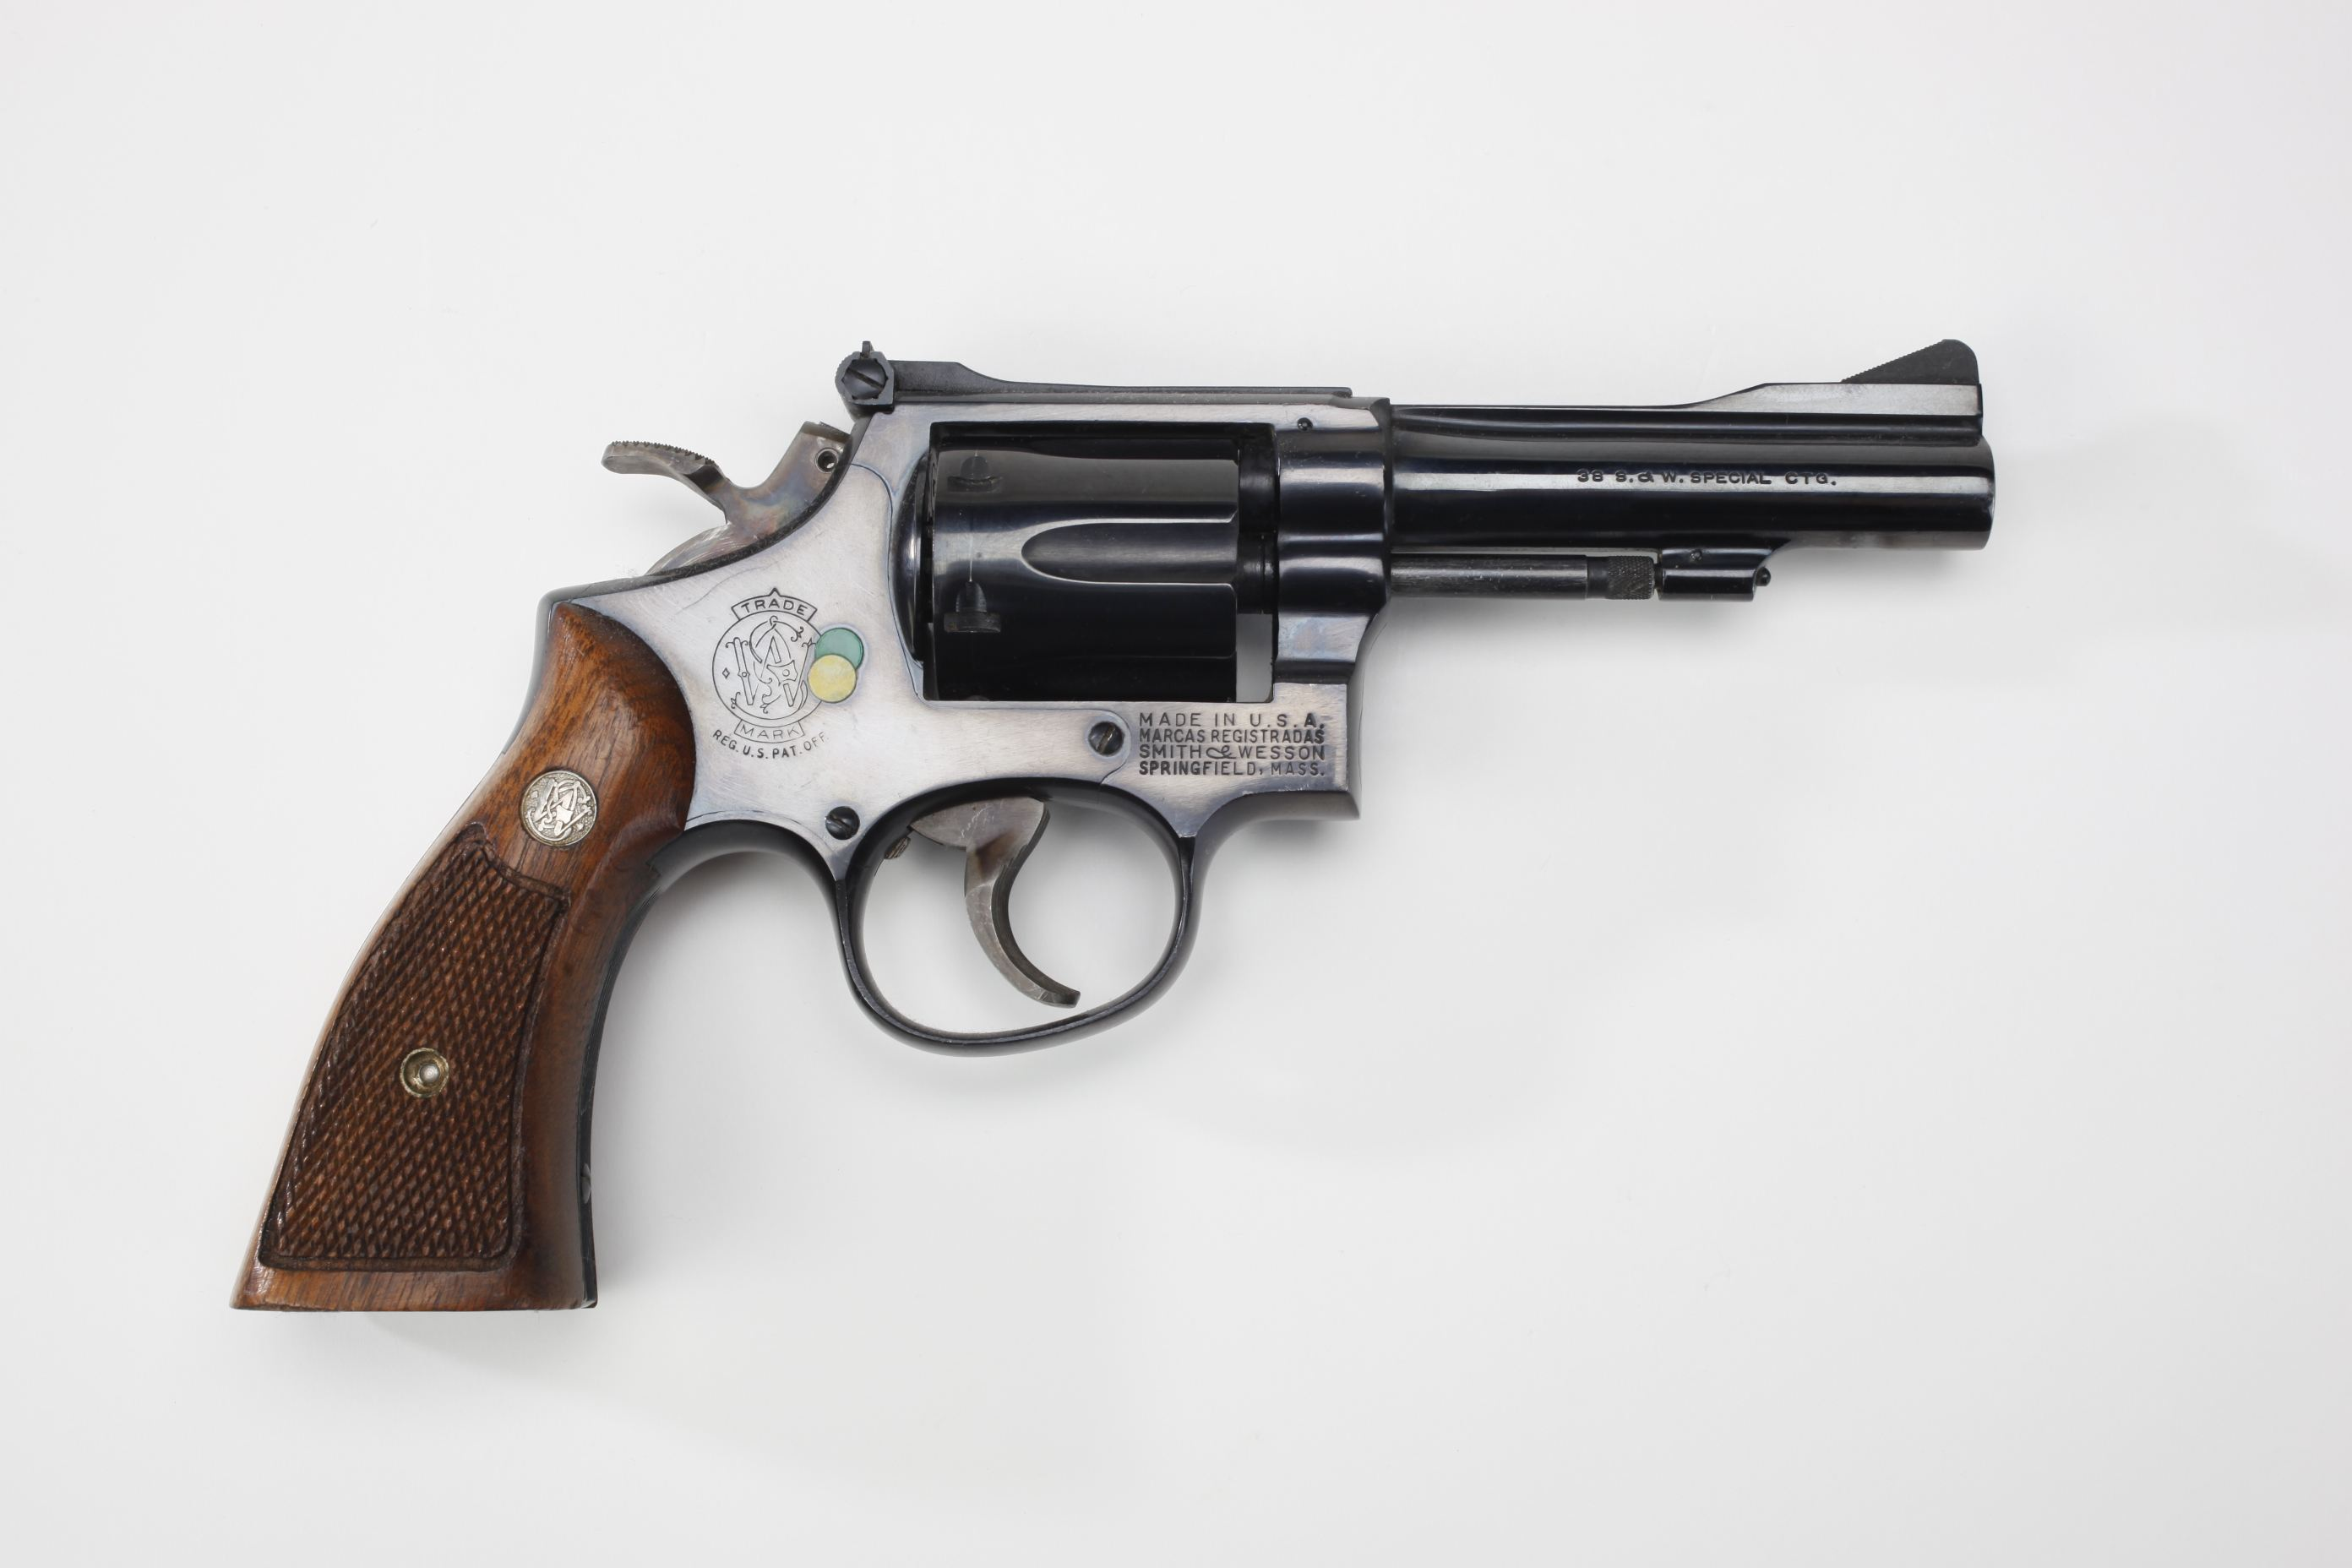 Smith & Wesson Model 15 Combat Masterpiece Revolver